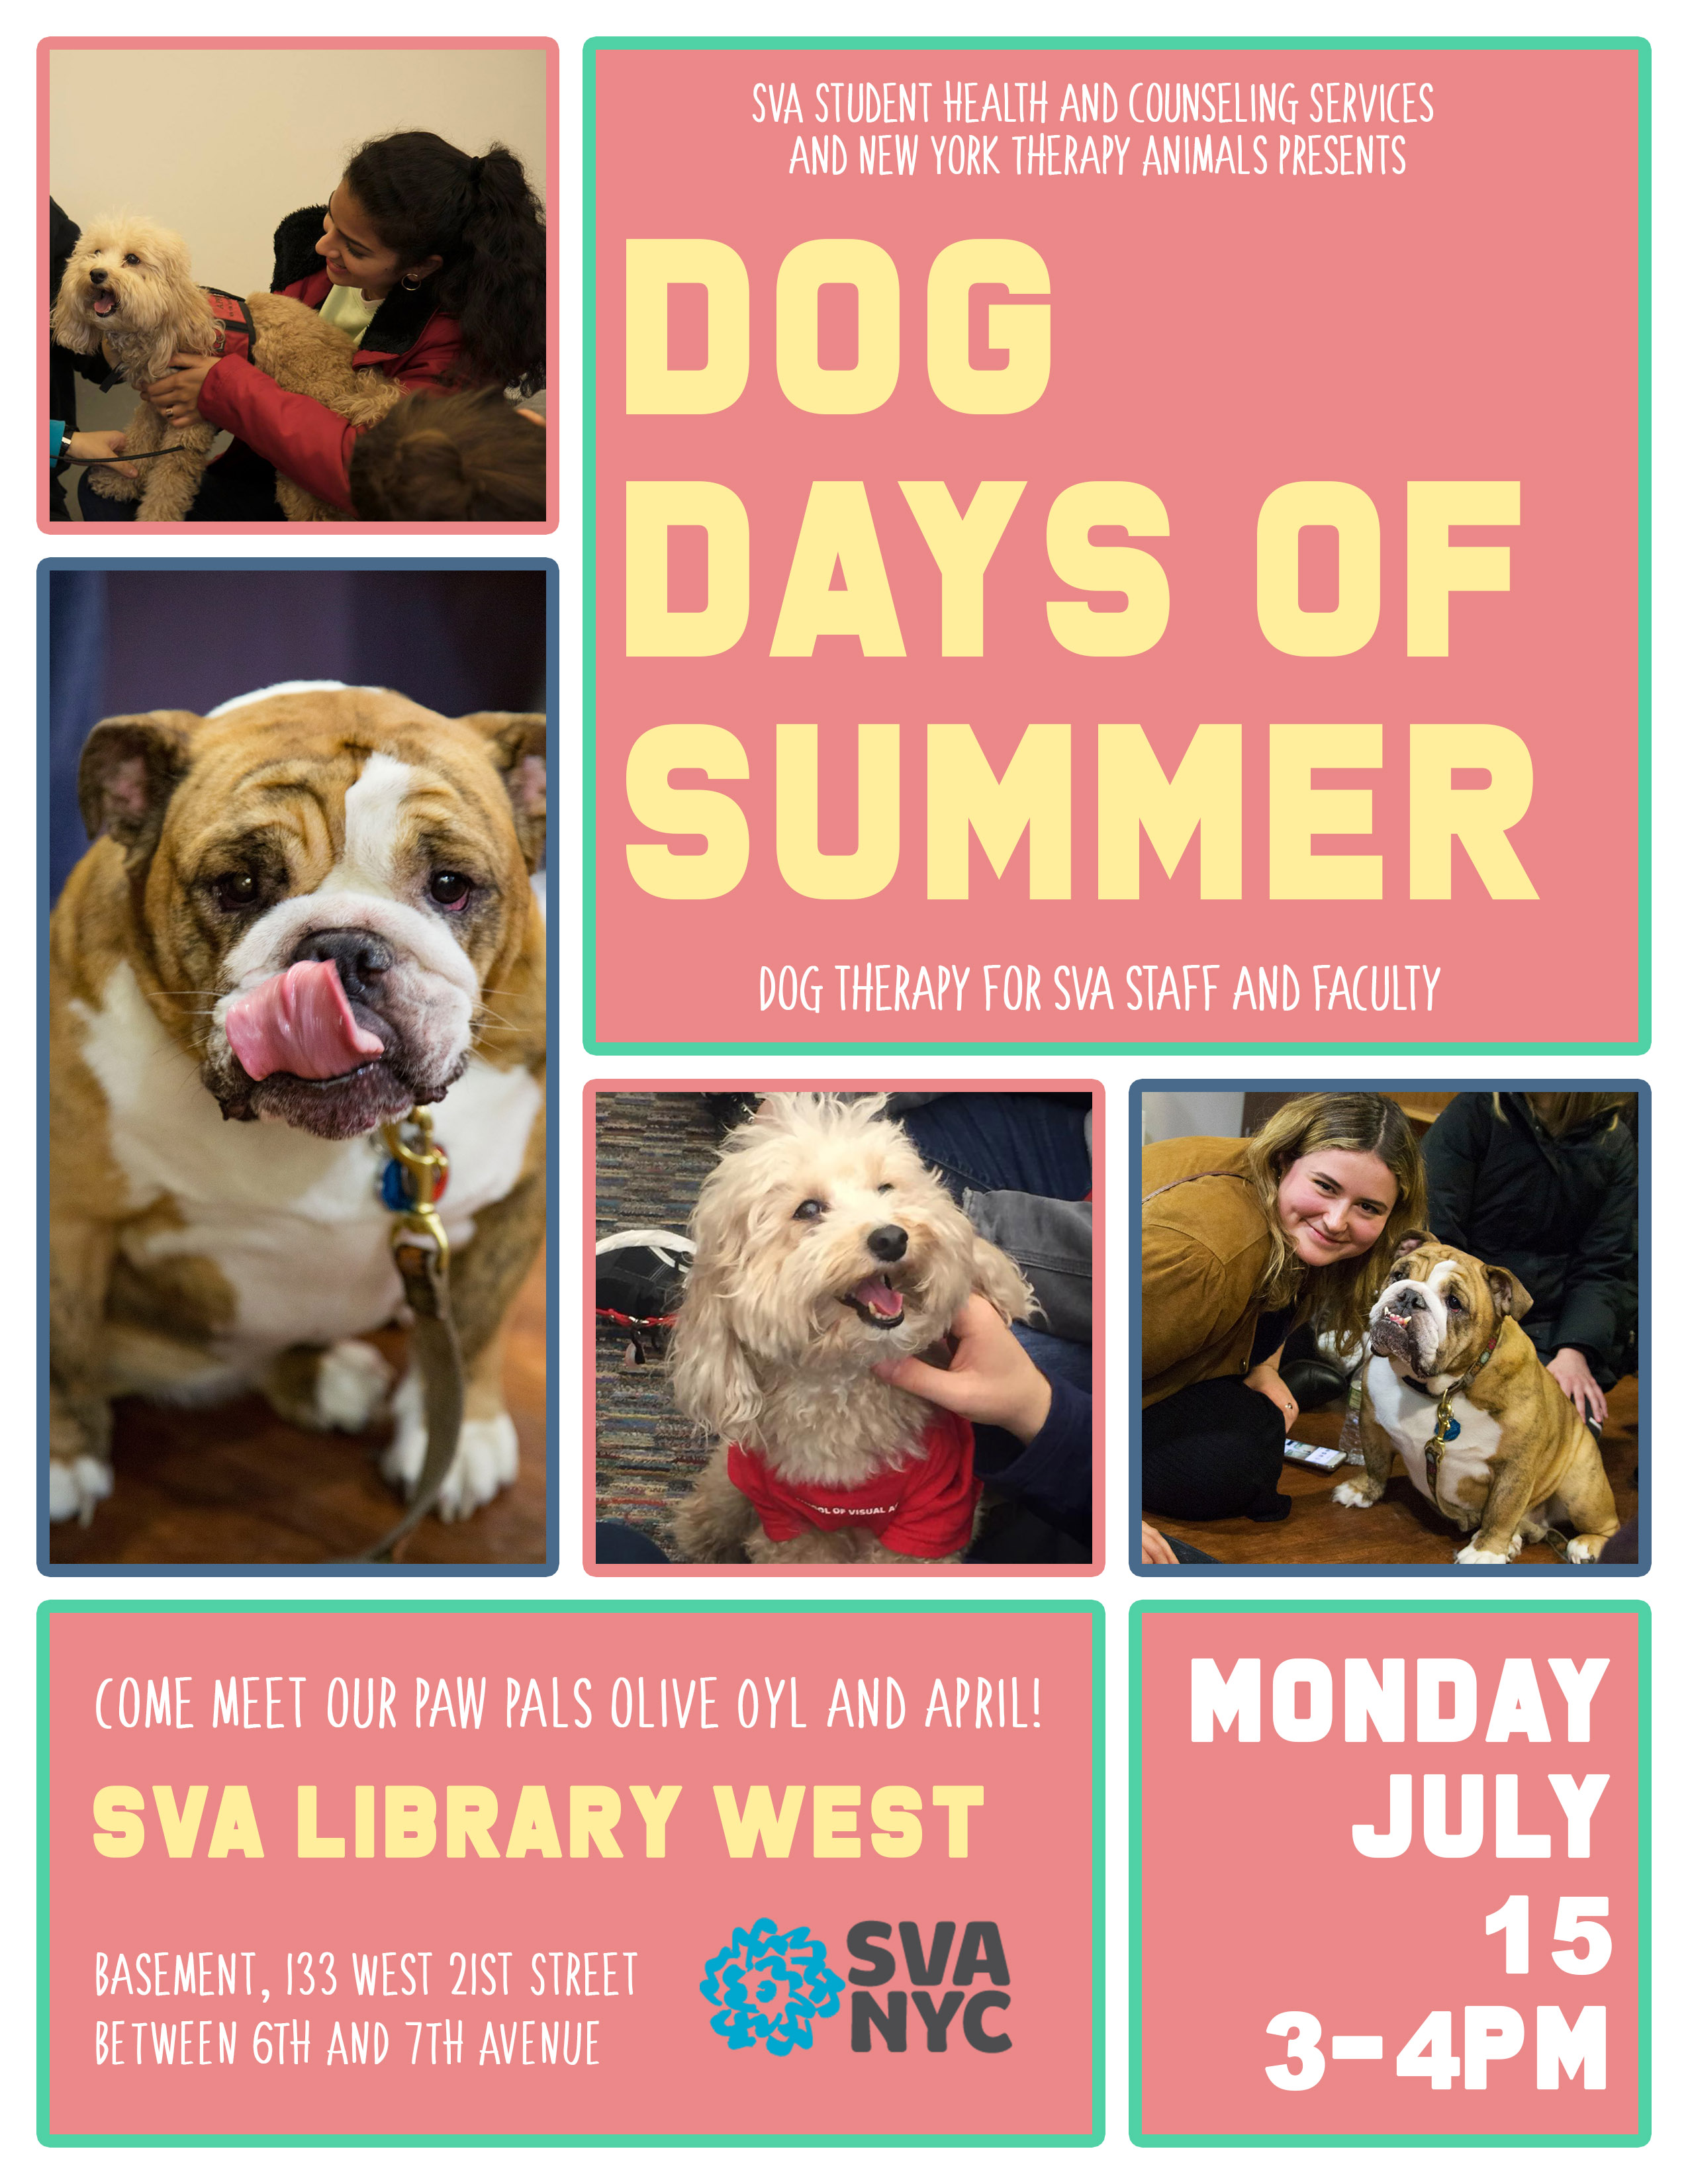 Dog Days: Dog Therapy for SVA Faculty & Staff